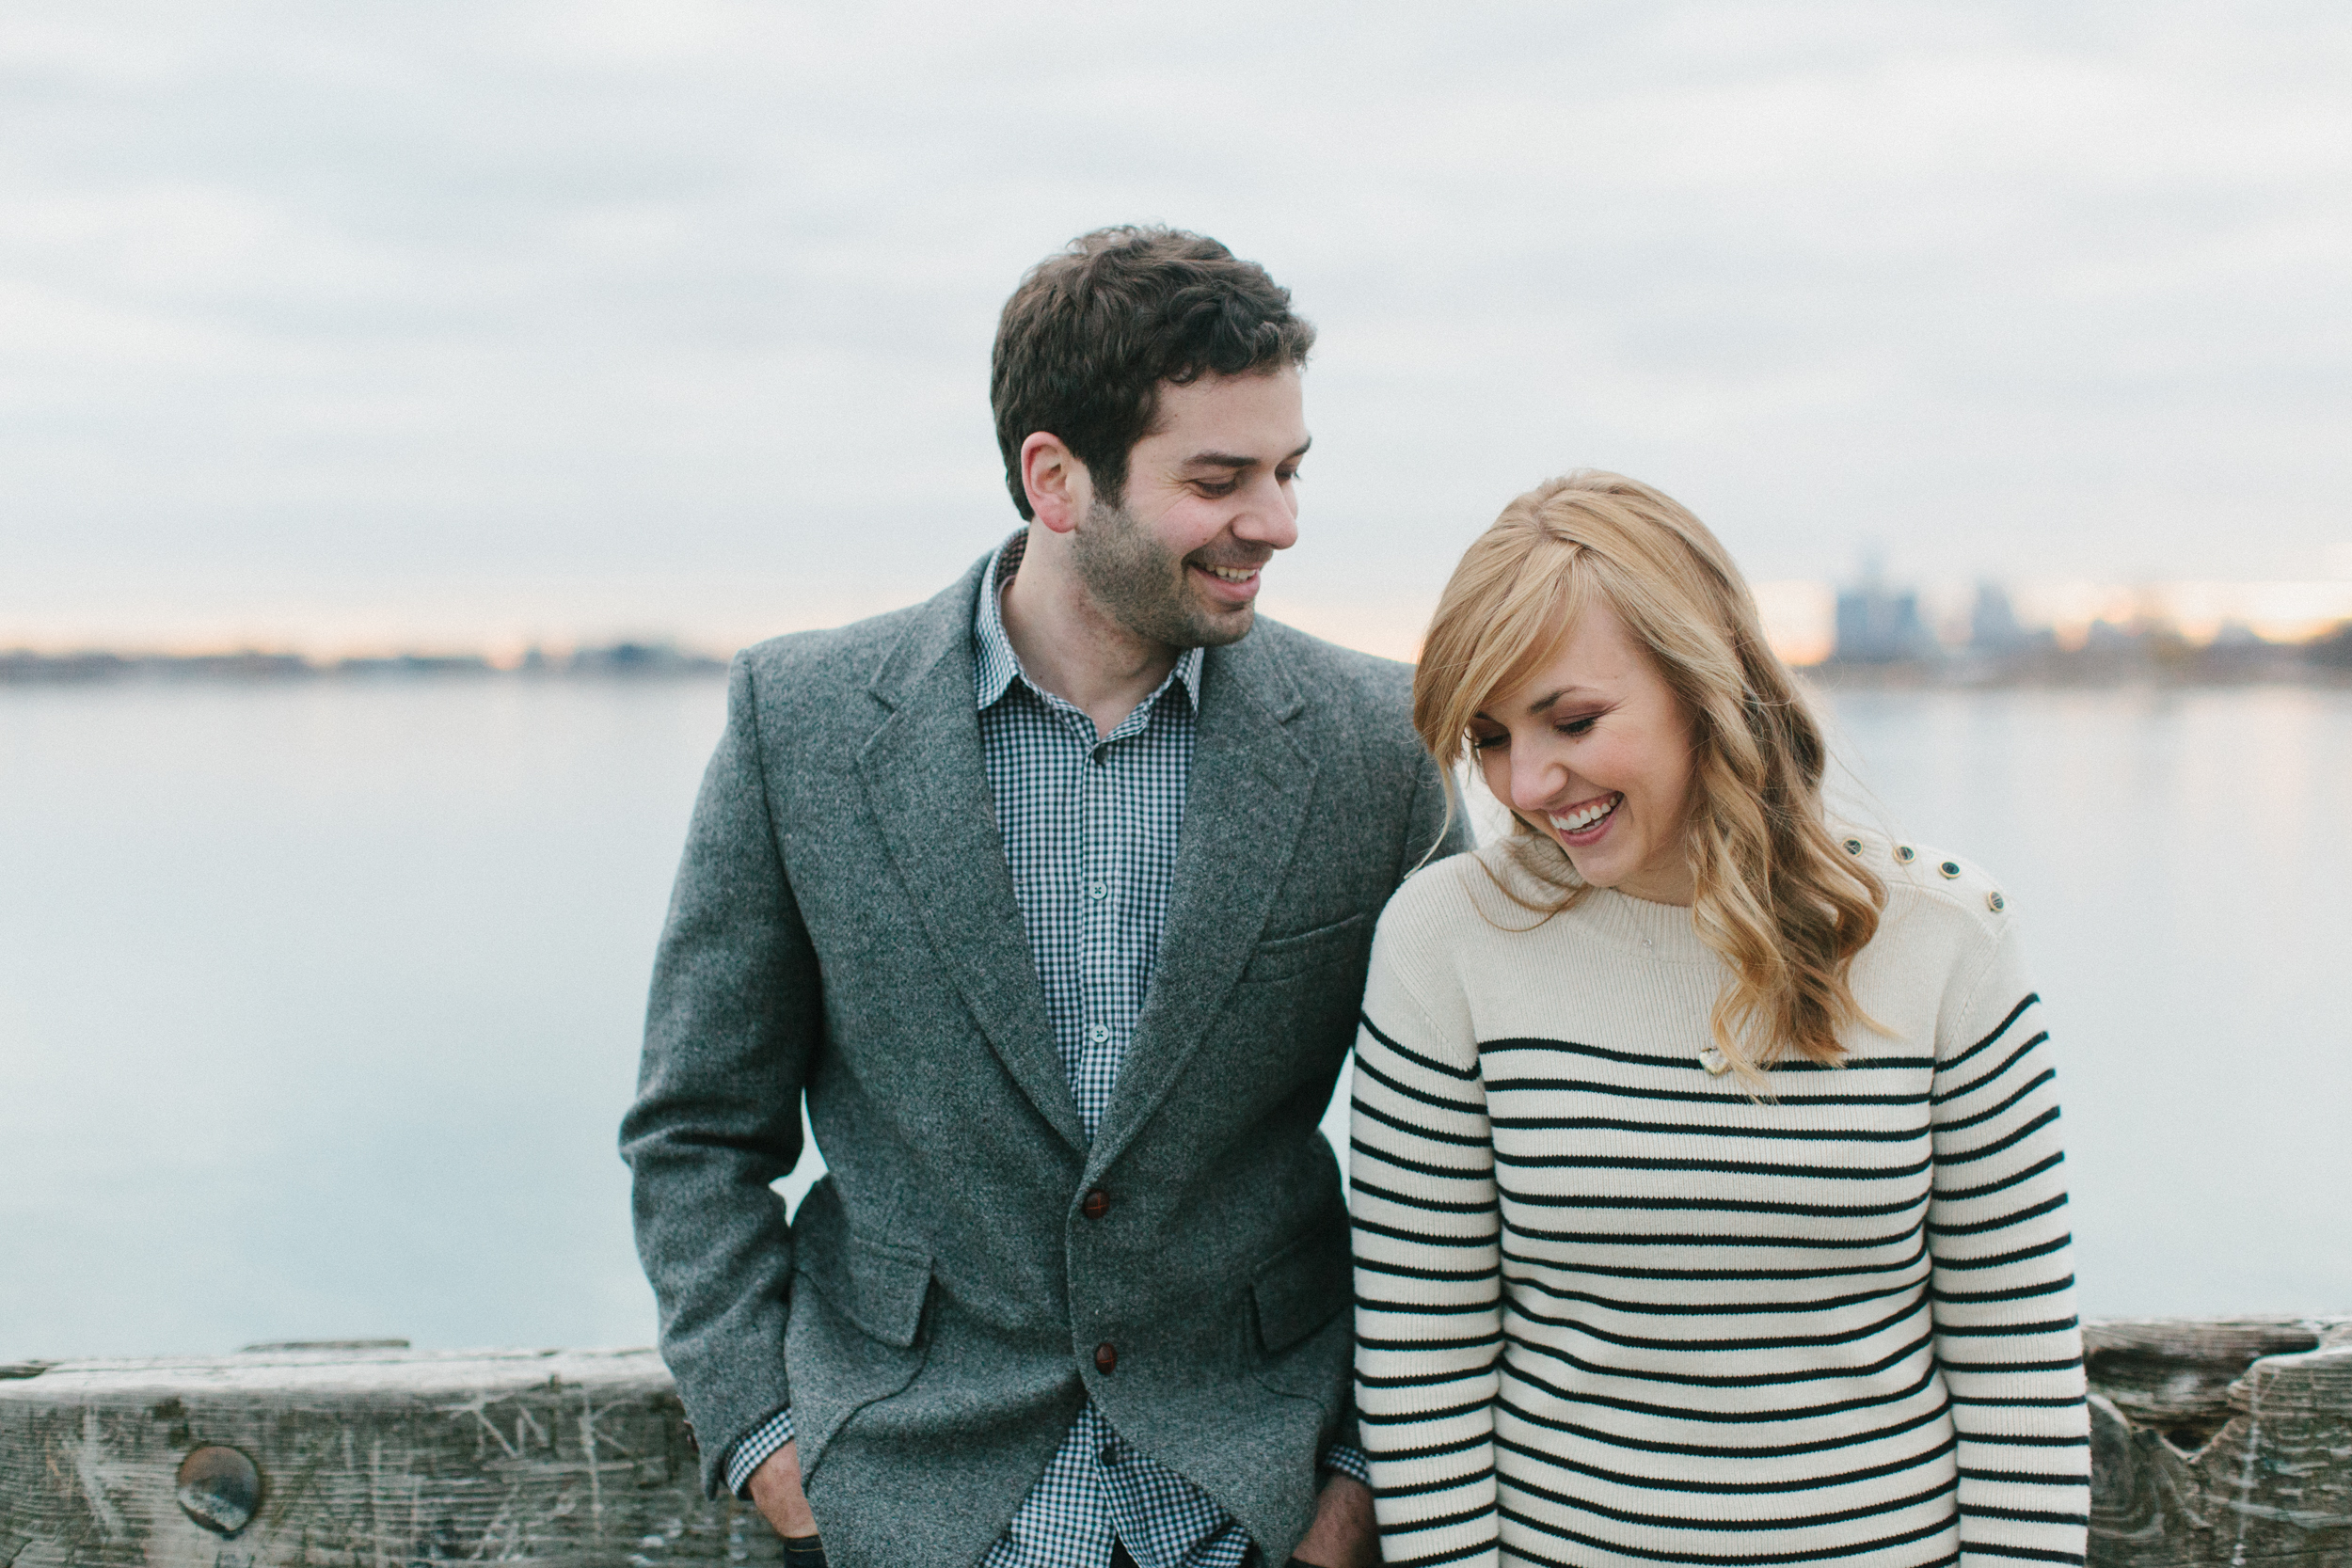 Detroit Michigan Belle Isle Engagement photos Lifestyle Wedding Photographer Mae Stier Candid Photography-031.jpg